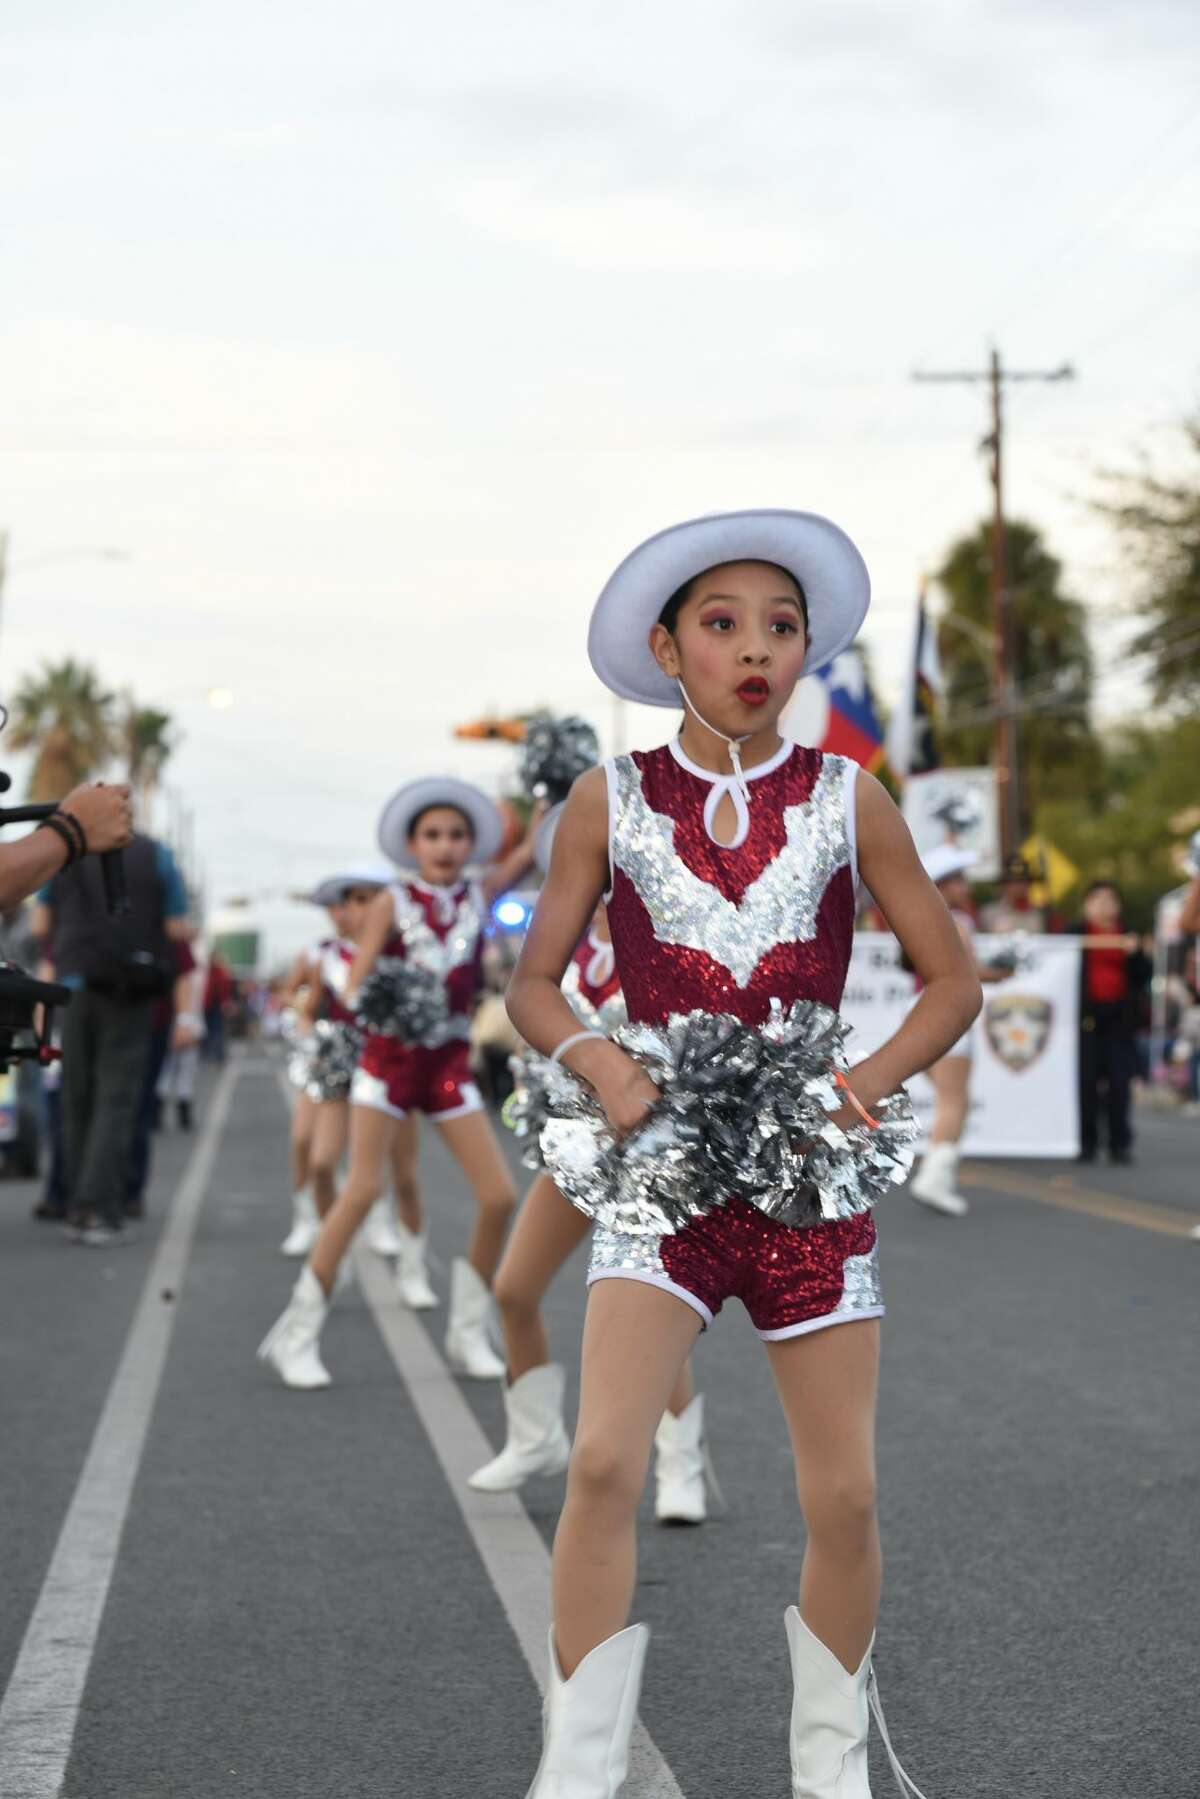 The IBC Youth Parade Under the Stars featured schools and sponsors during its run through San Bernardo Ave, Thursday, February 21, 2019.